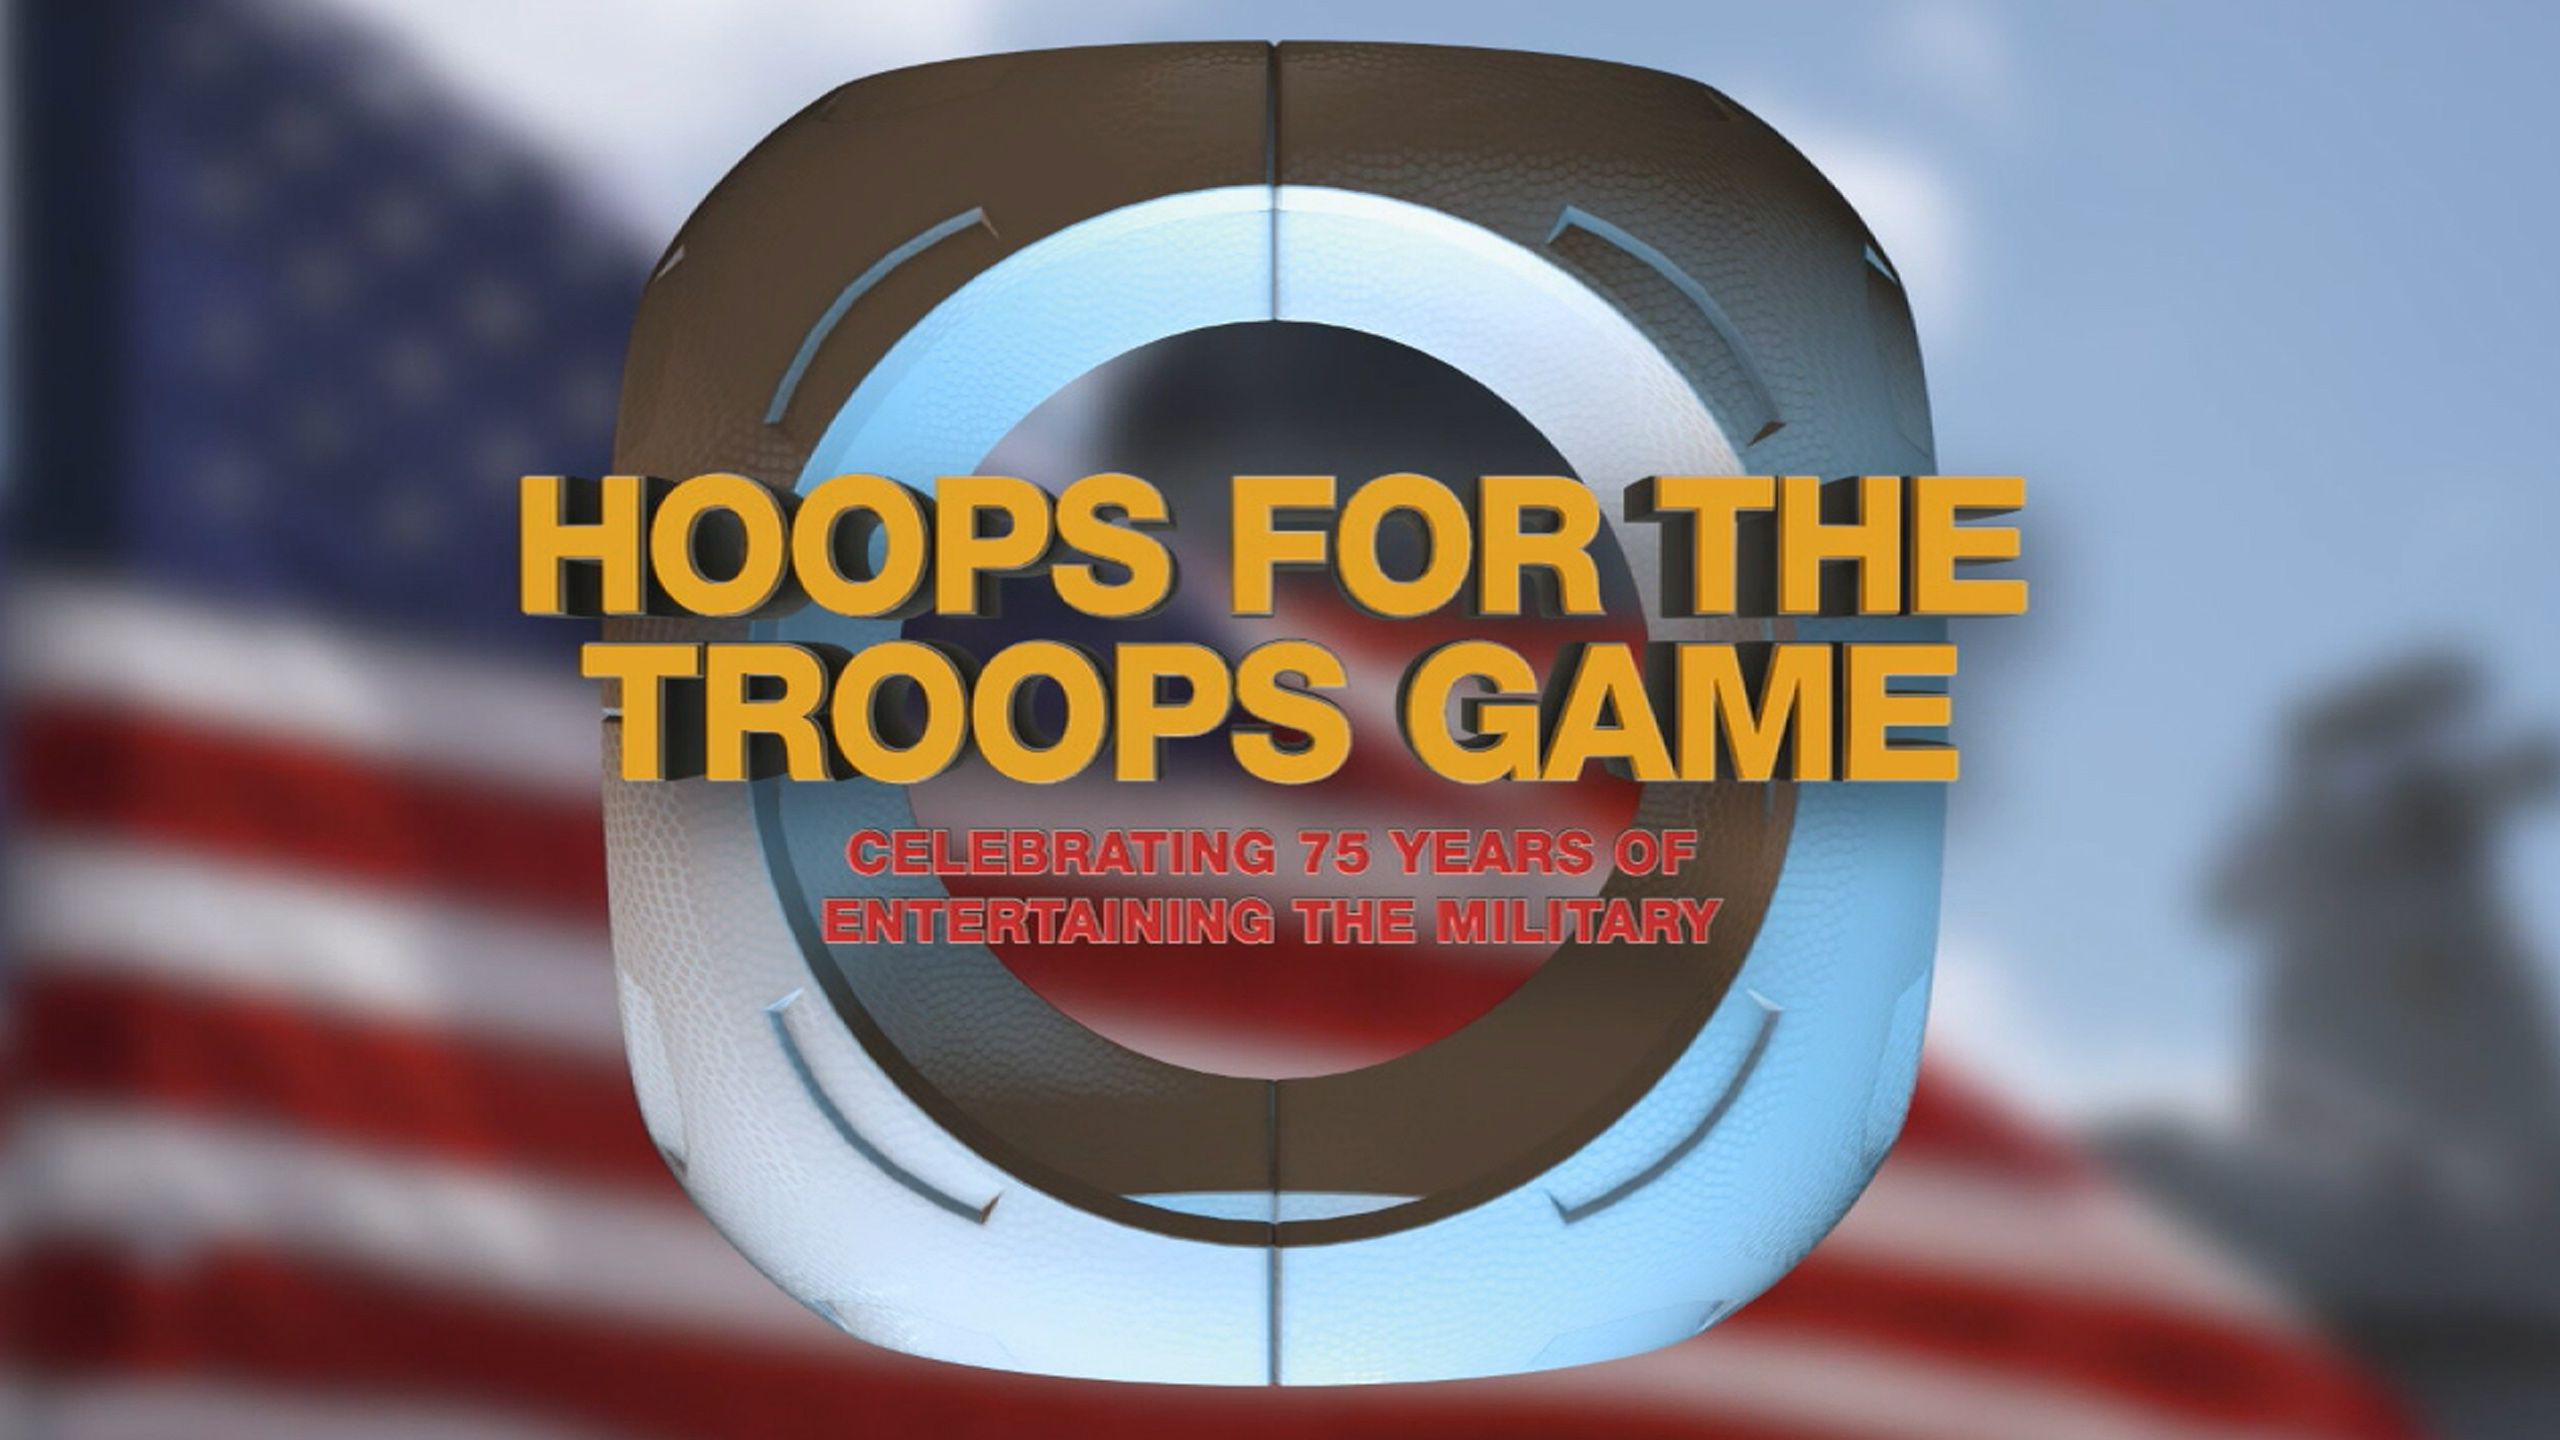 Harlem Globetrotters Hoops for the Troops Game